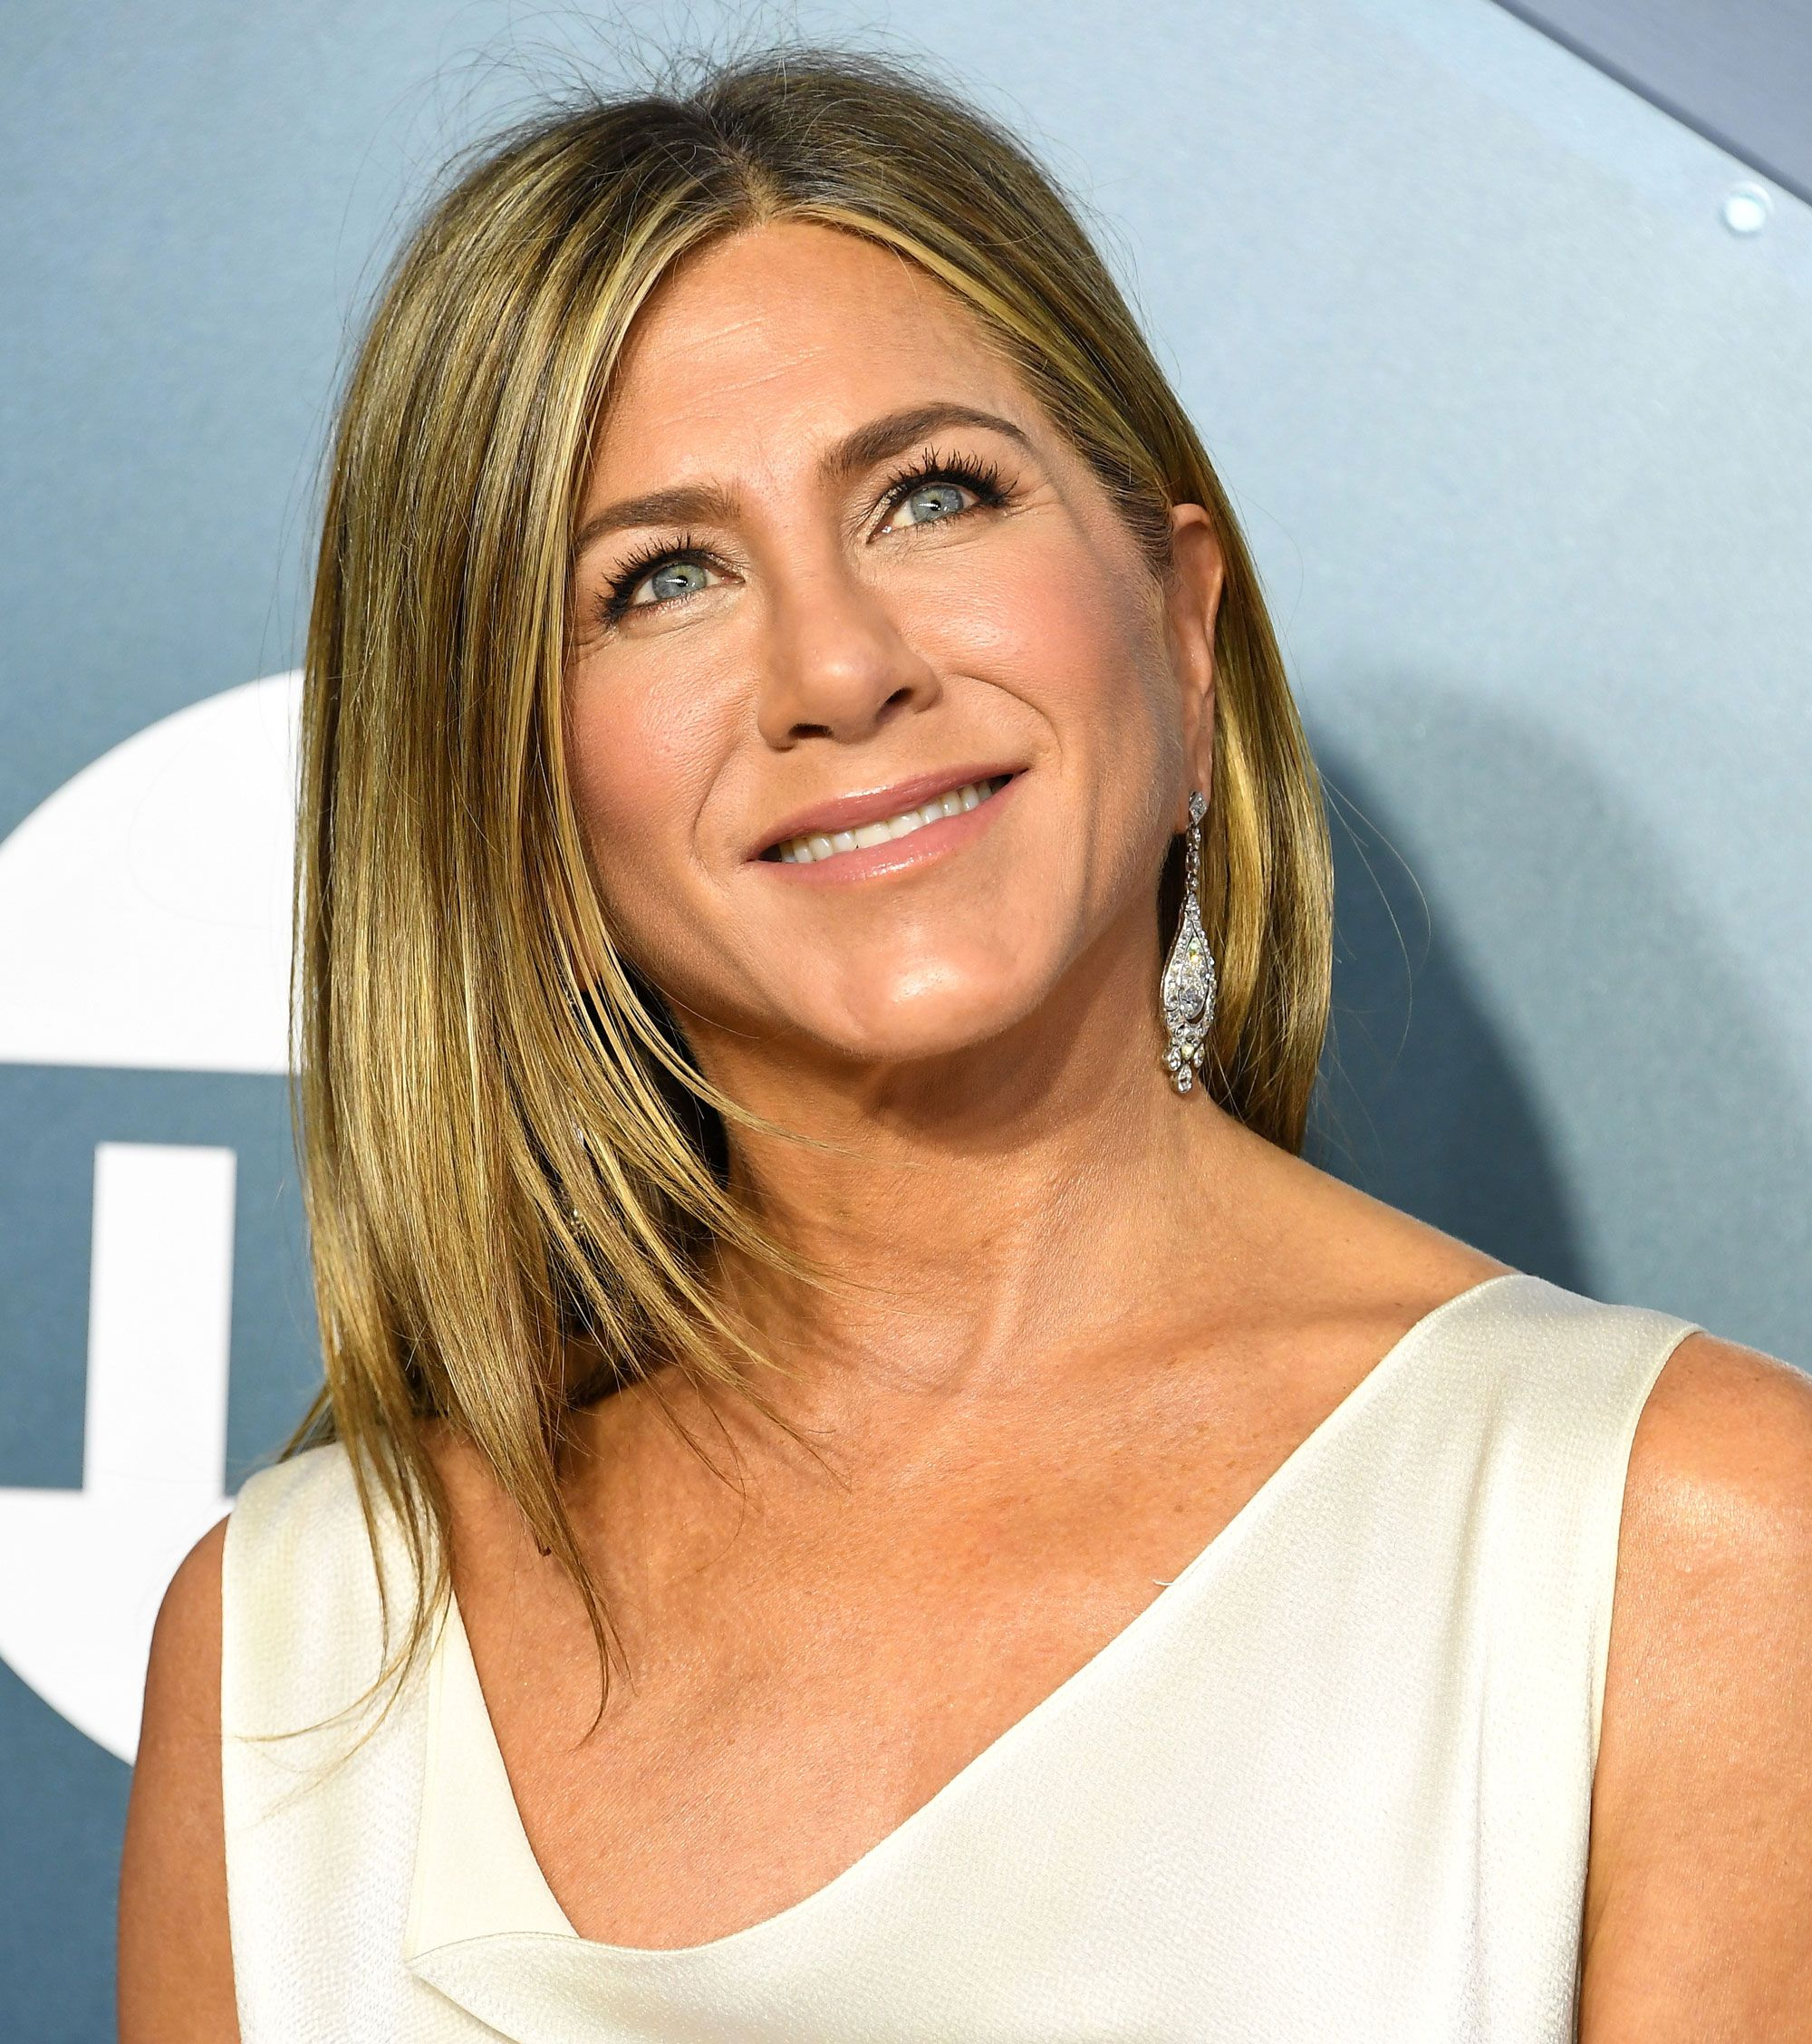 Jennifer Aniston S Emmys Beauty Prep Is So Relatable